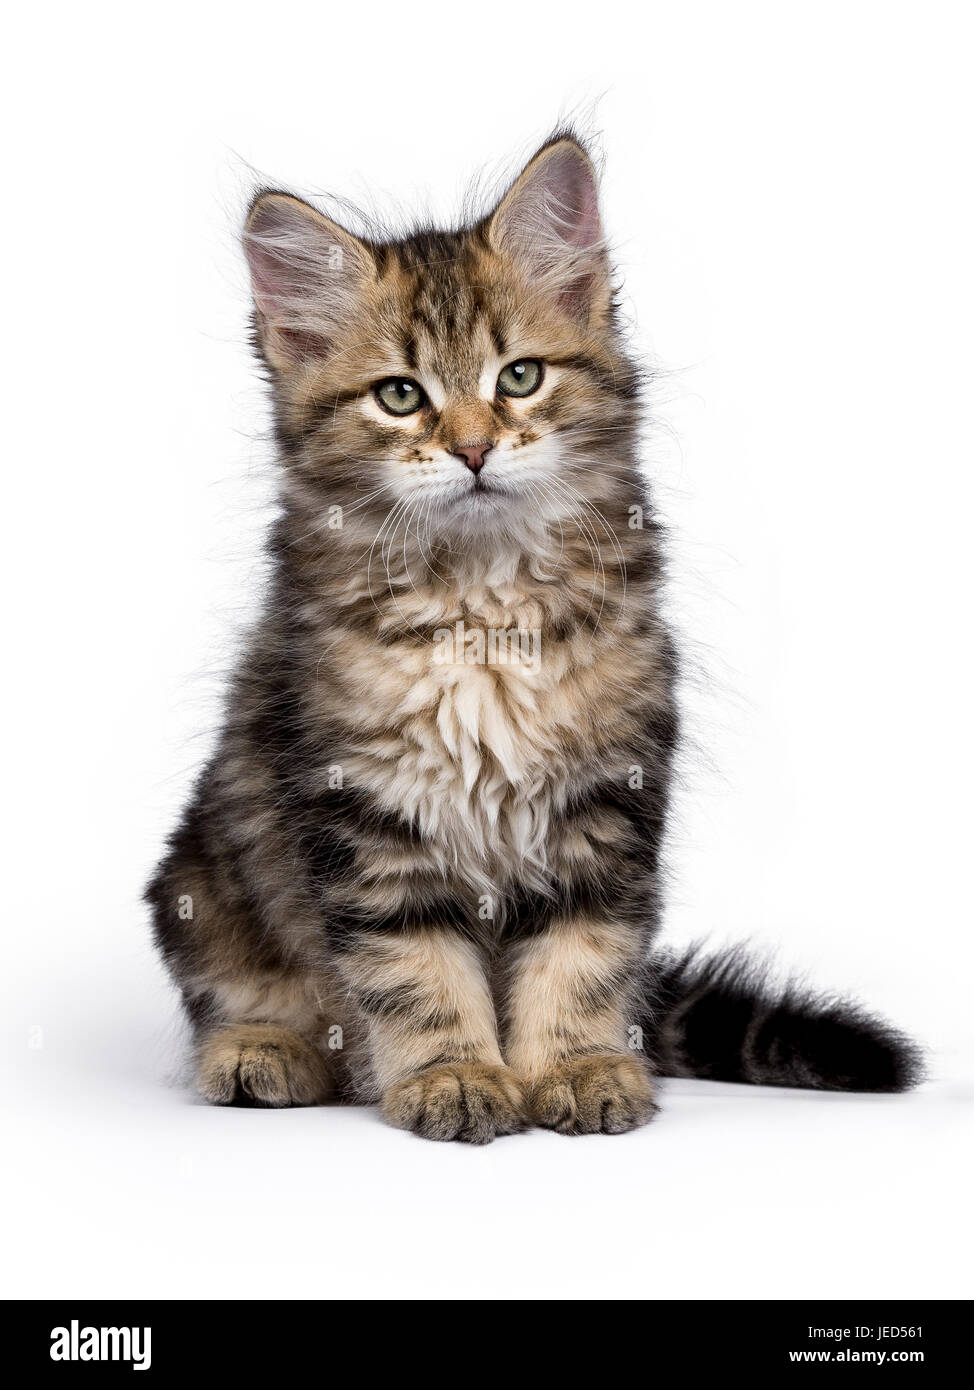 Black tabby Siberian Forest cat / kitten sitting isolated on white background looking to the side - Stock Image